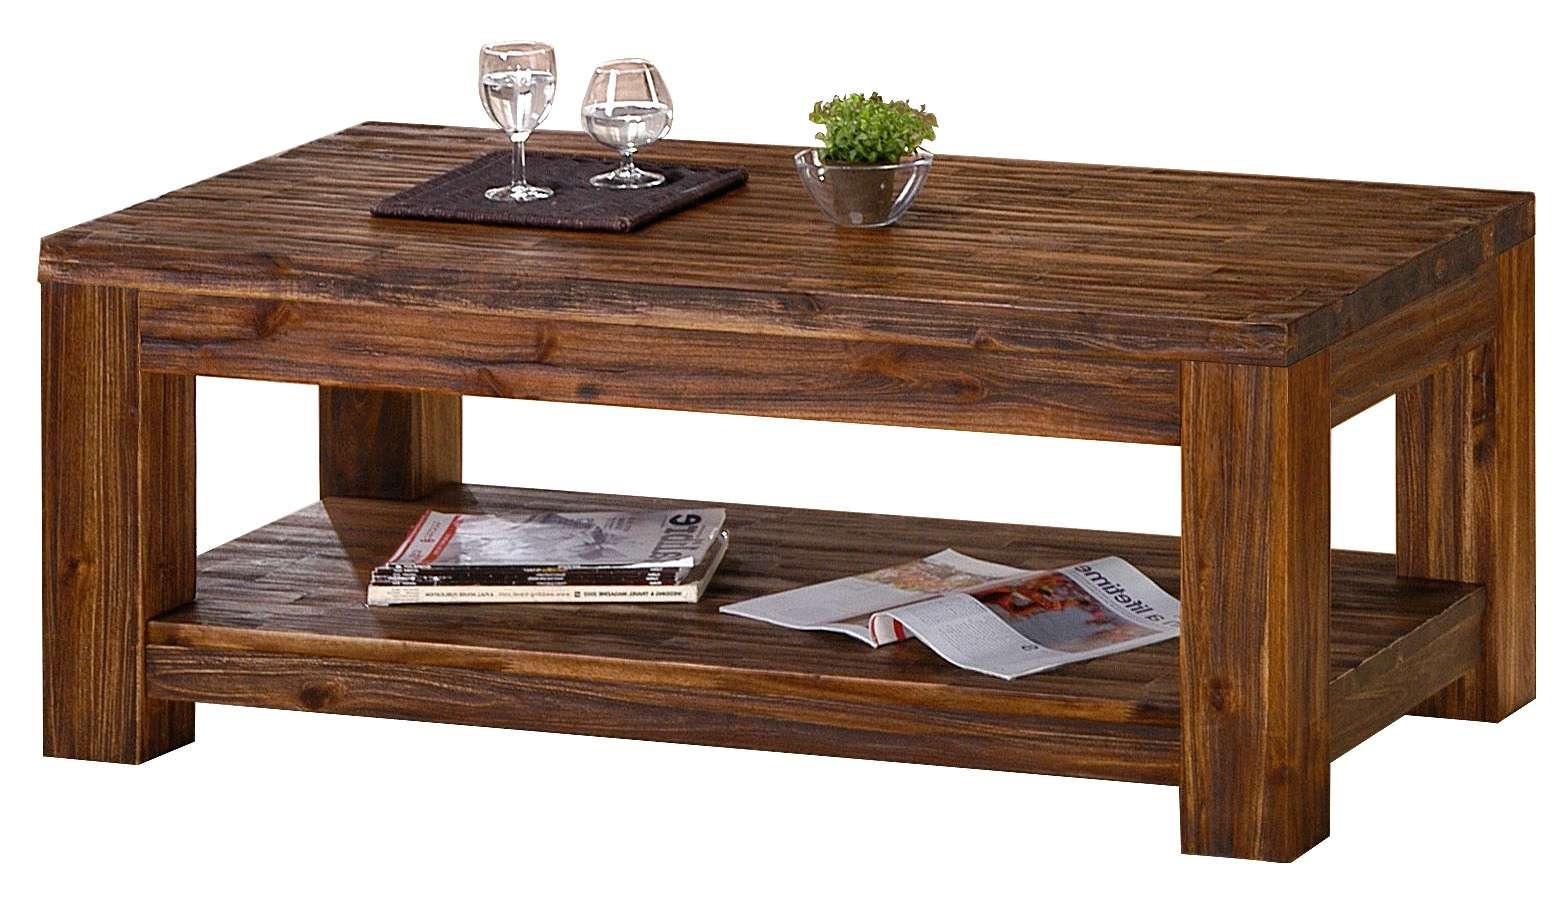 Acacia Wood Coffee Table – Mfp Furniture In Recent Dark Brown Coffee Tables (Gallery 18 of 20)